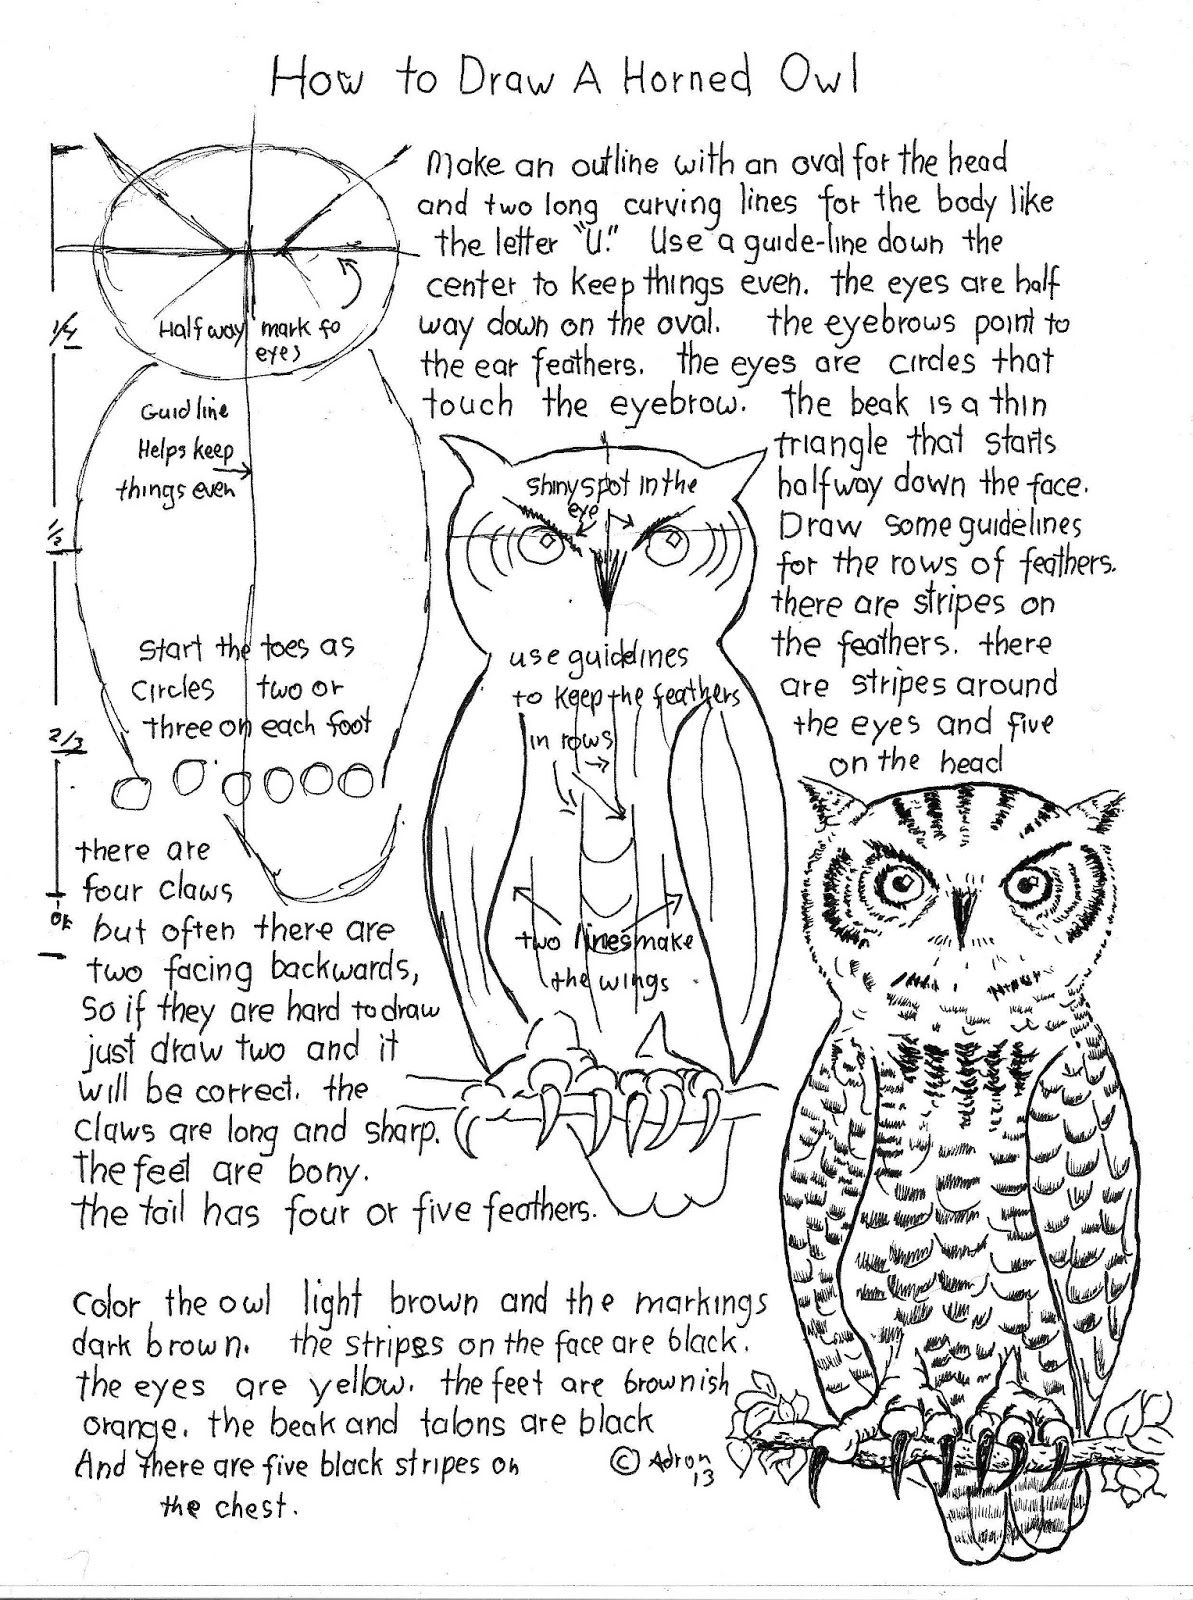 How To Draw A Horned Owl Worksheet And Lesson Read The